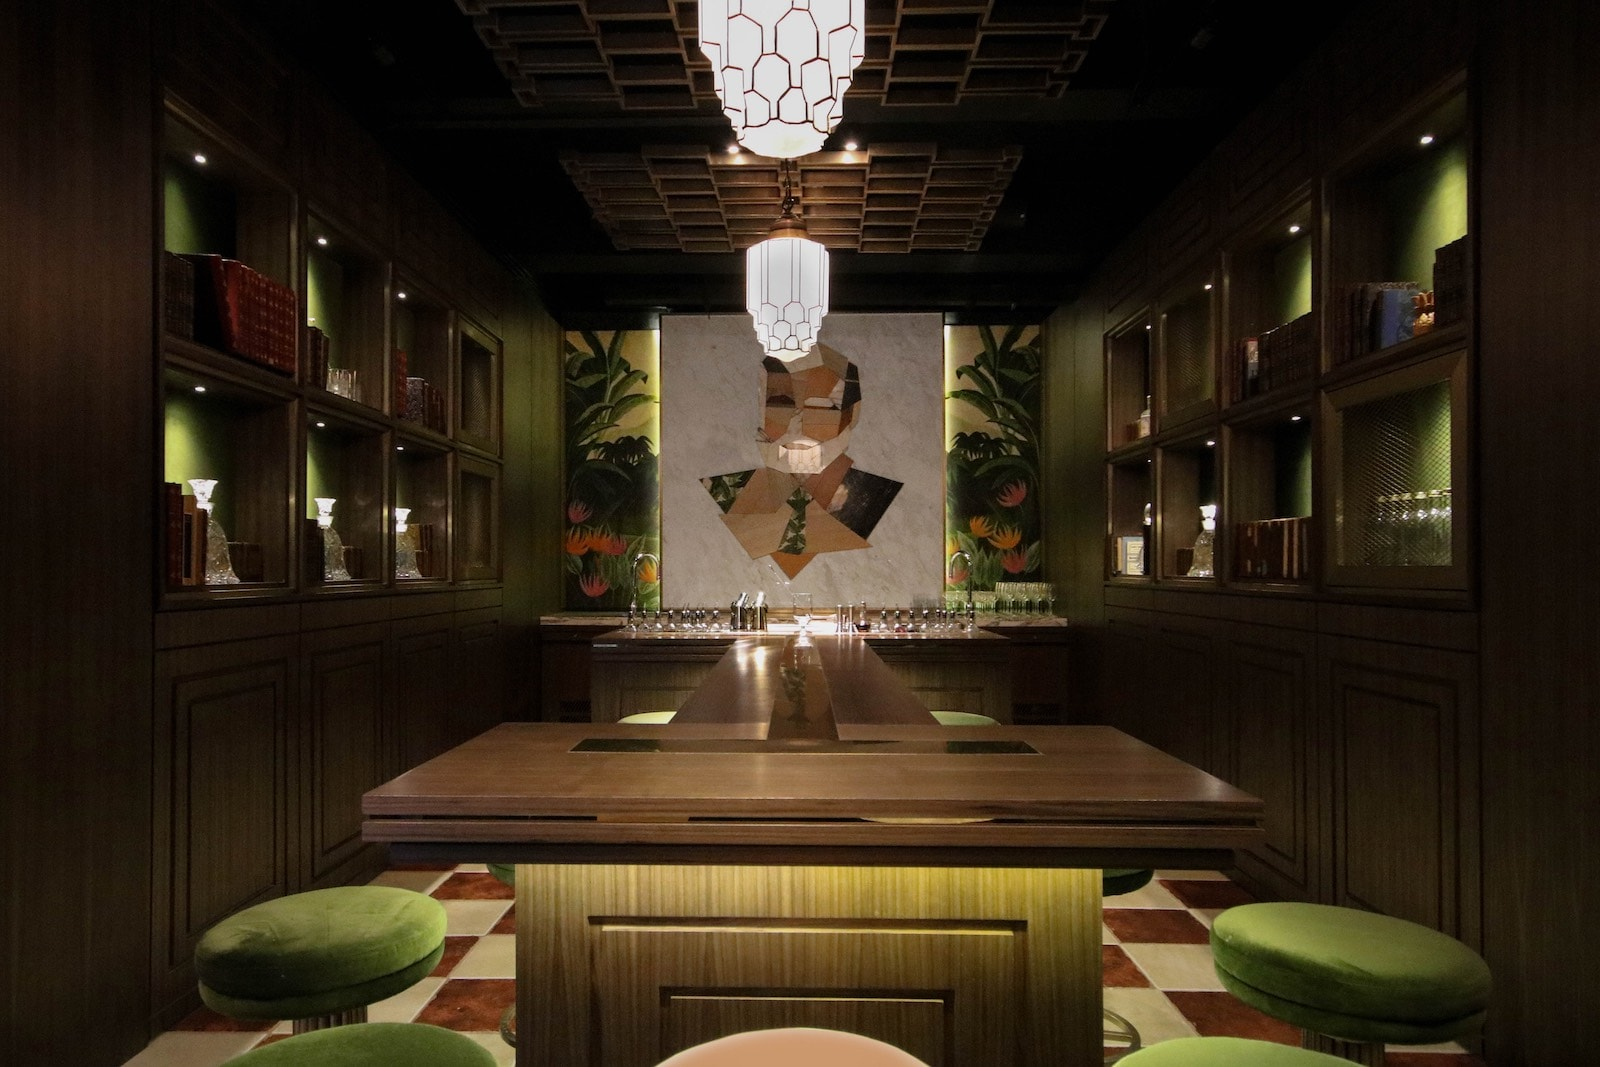 Review: The Old Man Singapore transplants Asia's best bar to our shores